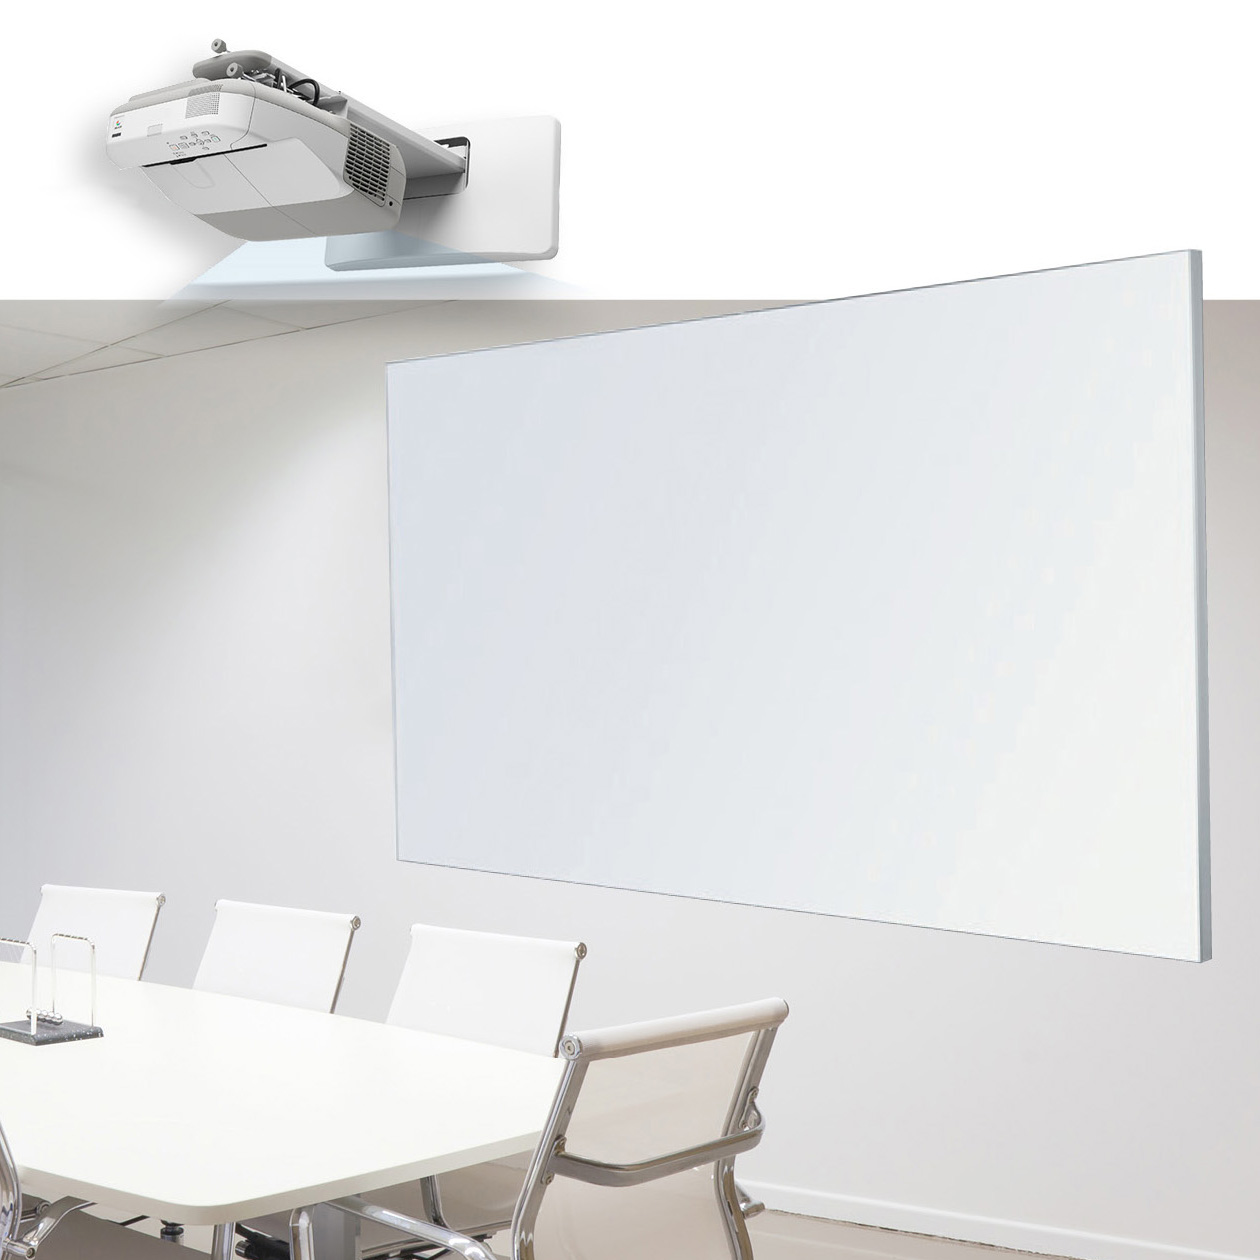 Projection Edge Whiteboards